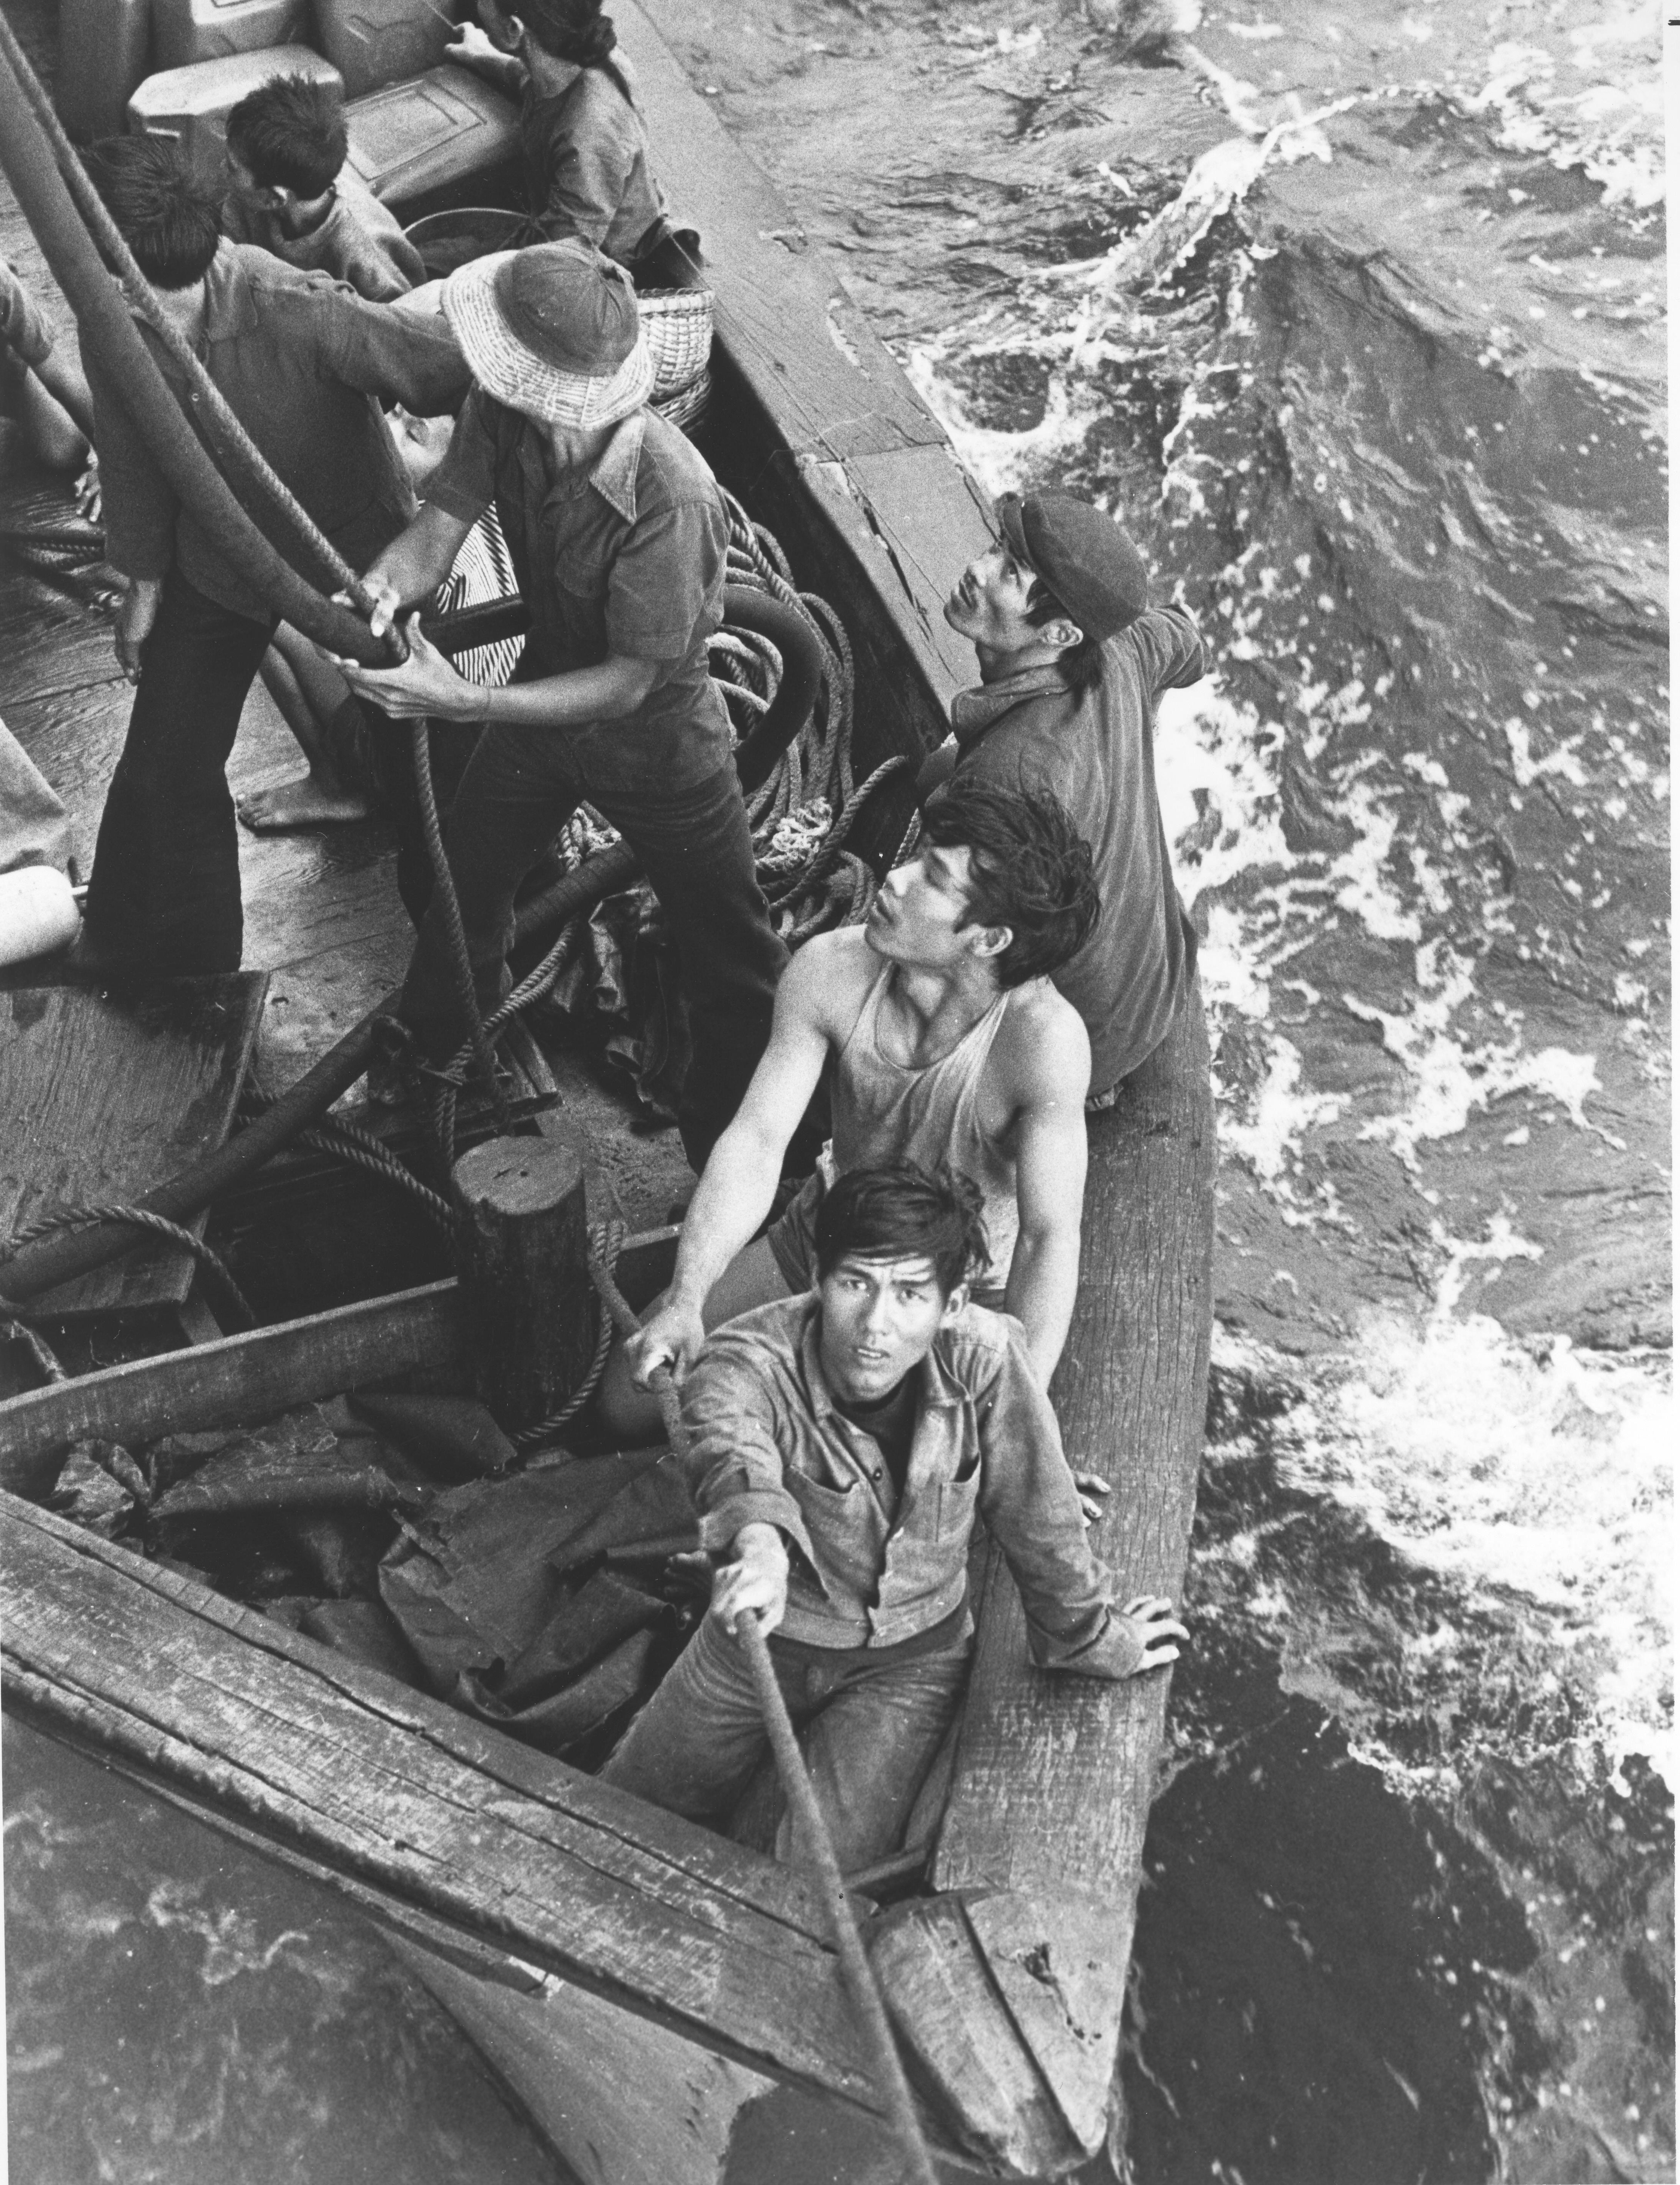 vietnamese refugees come alongside uss white plains afs 4 in 1979 naval